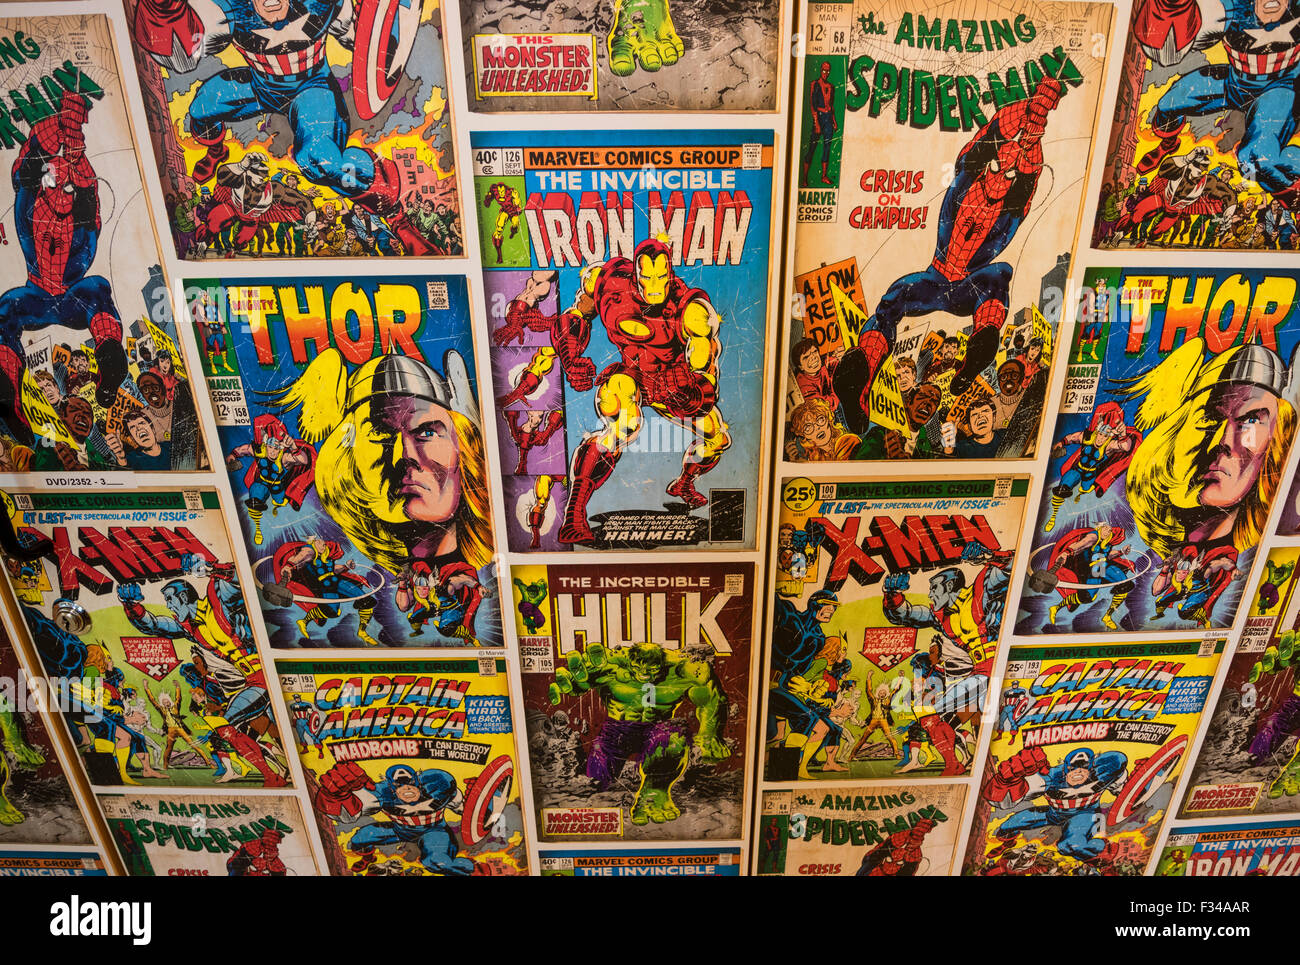 Wallpaper Display Created From Covers Of Marvel Comics Featuring Comic Super Heroes